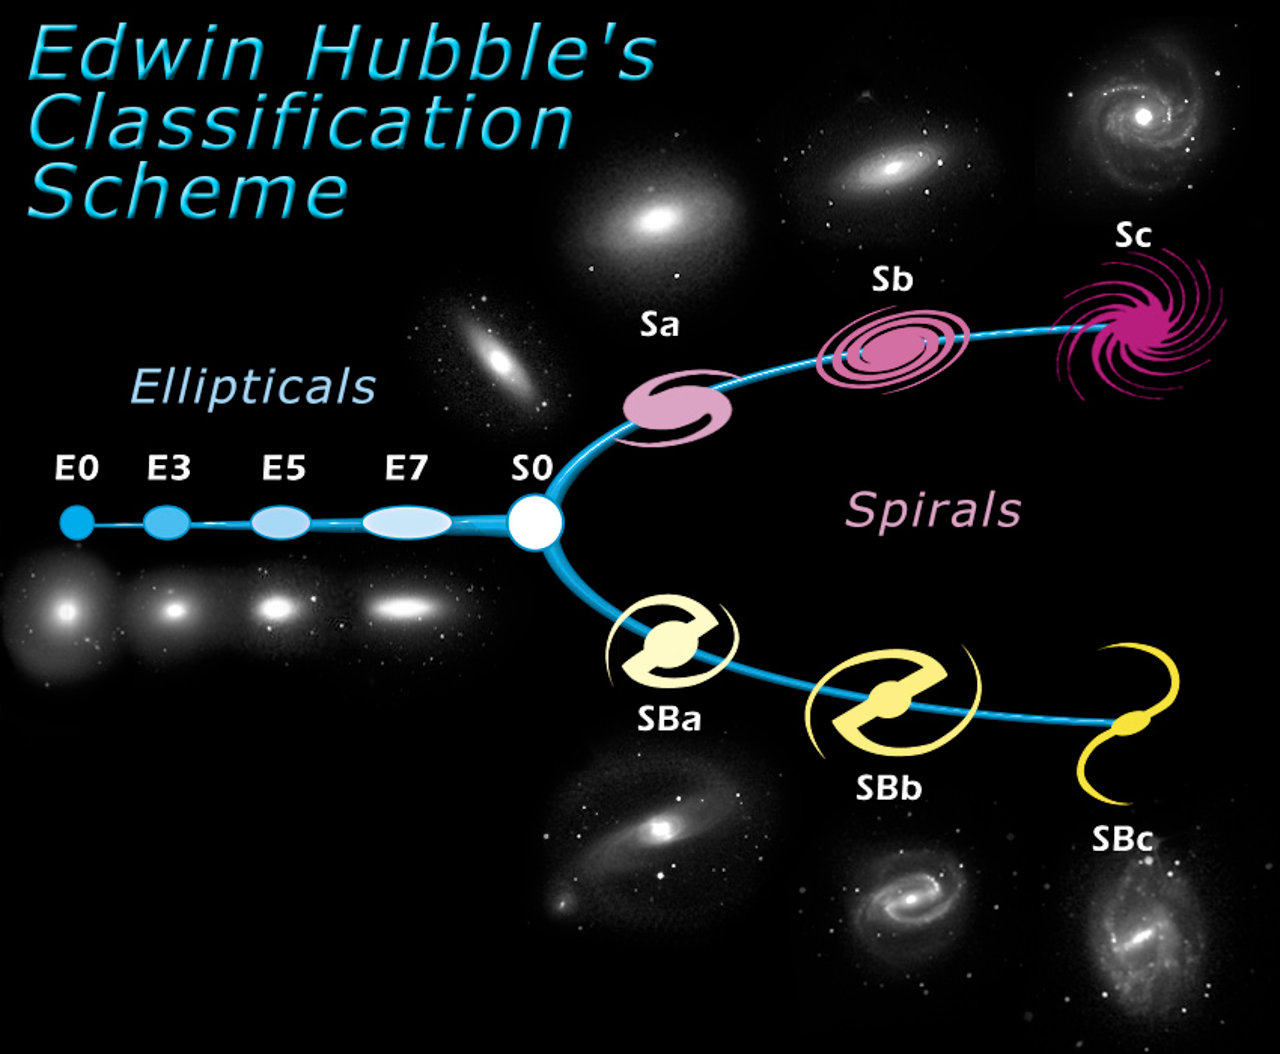 The Hubble Tuning Fork - Classification of Galaxies